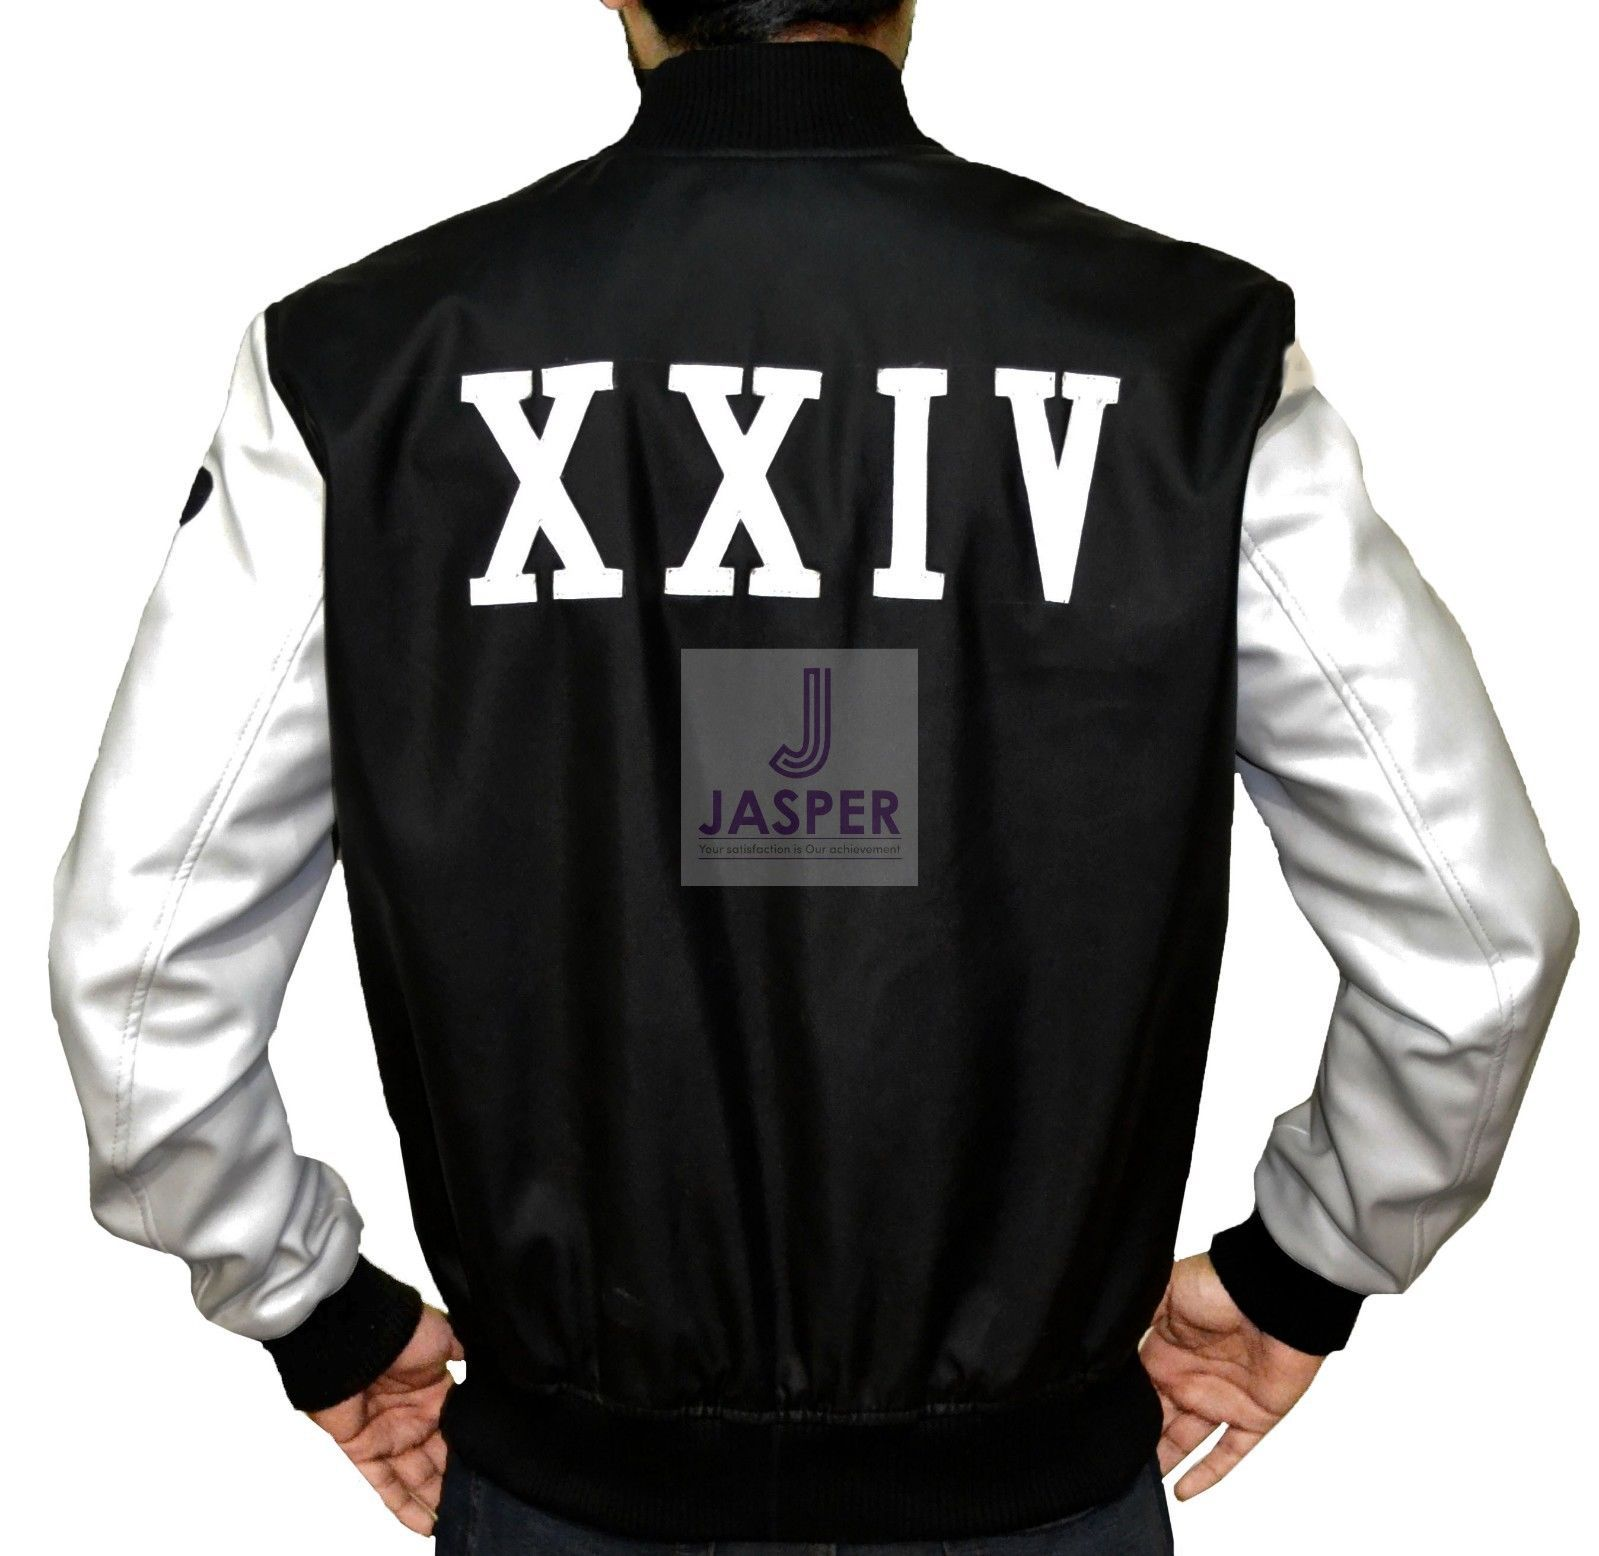 928273ca6e5dd9 KOBE Destroyer XXIV Battle Michael B Jordan Leather Jacket Inspired by  Micheal B Jordan an American movie Star from movie Creed and it s role as  Kobe ...